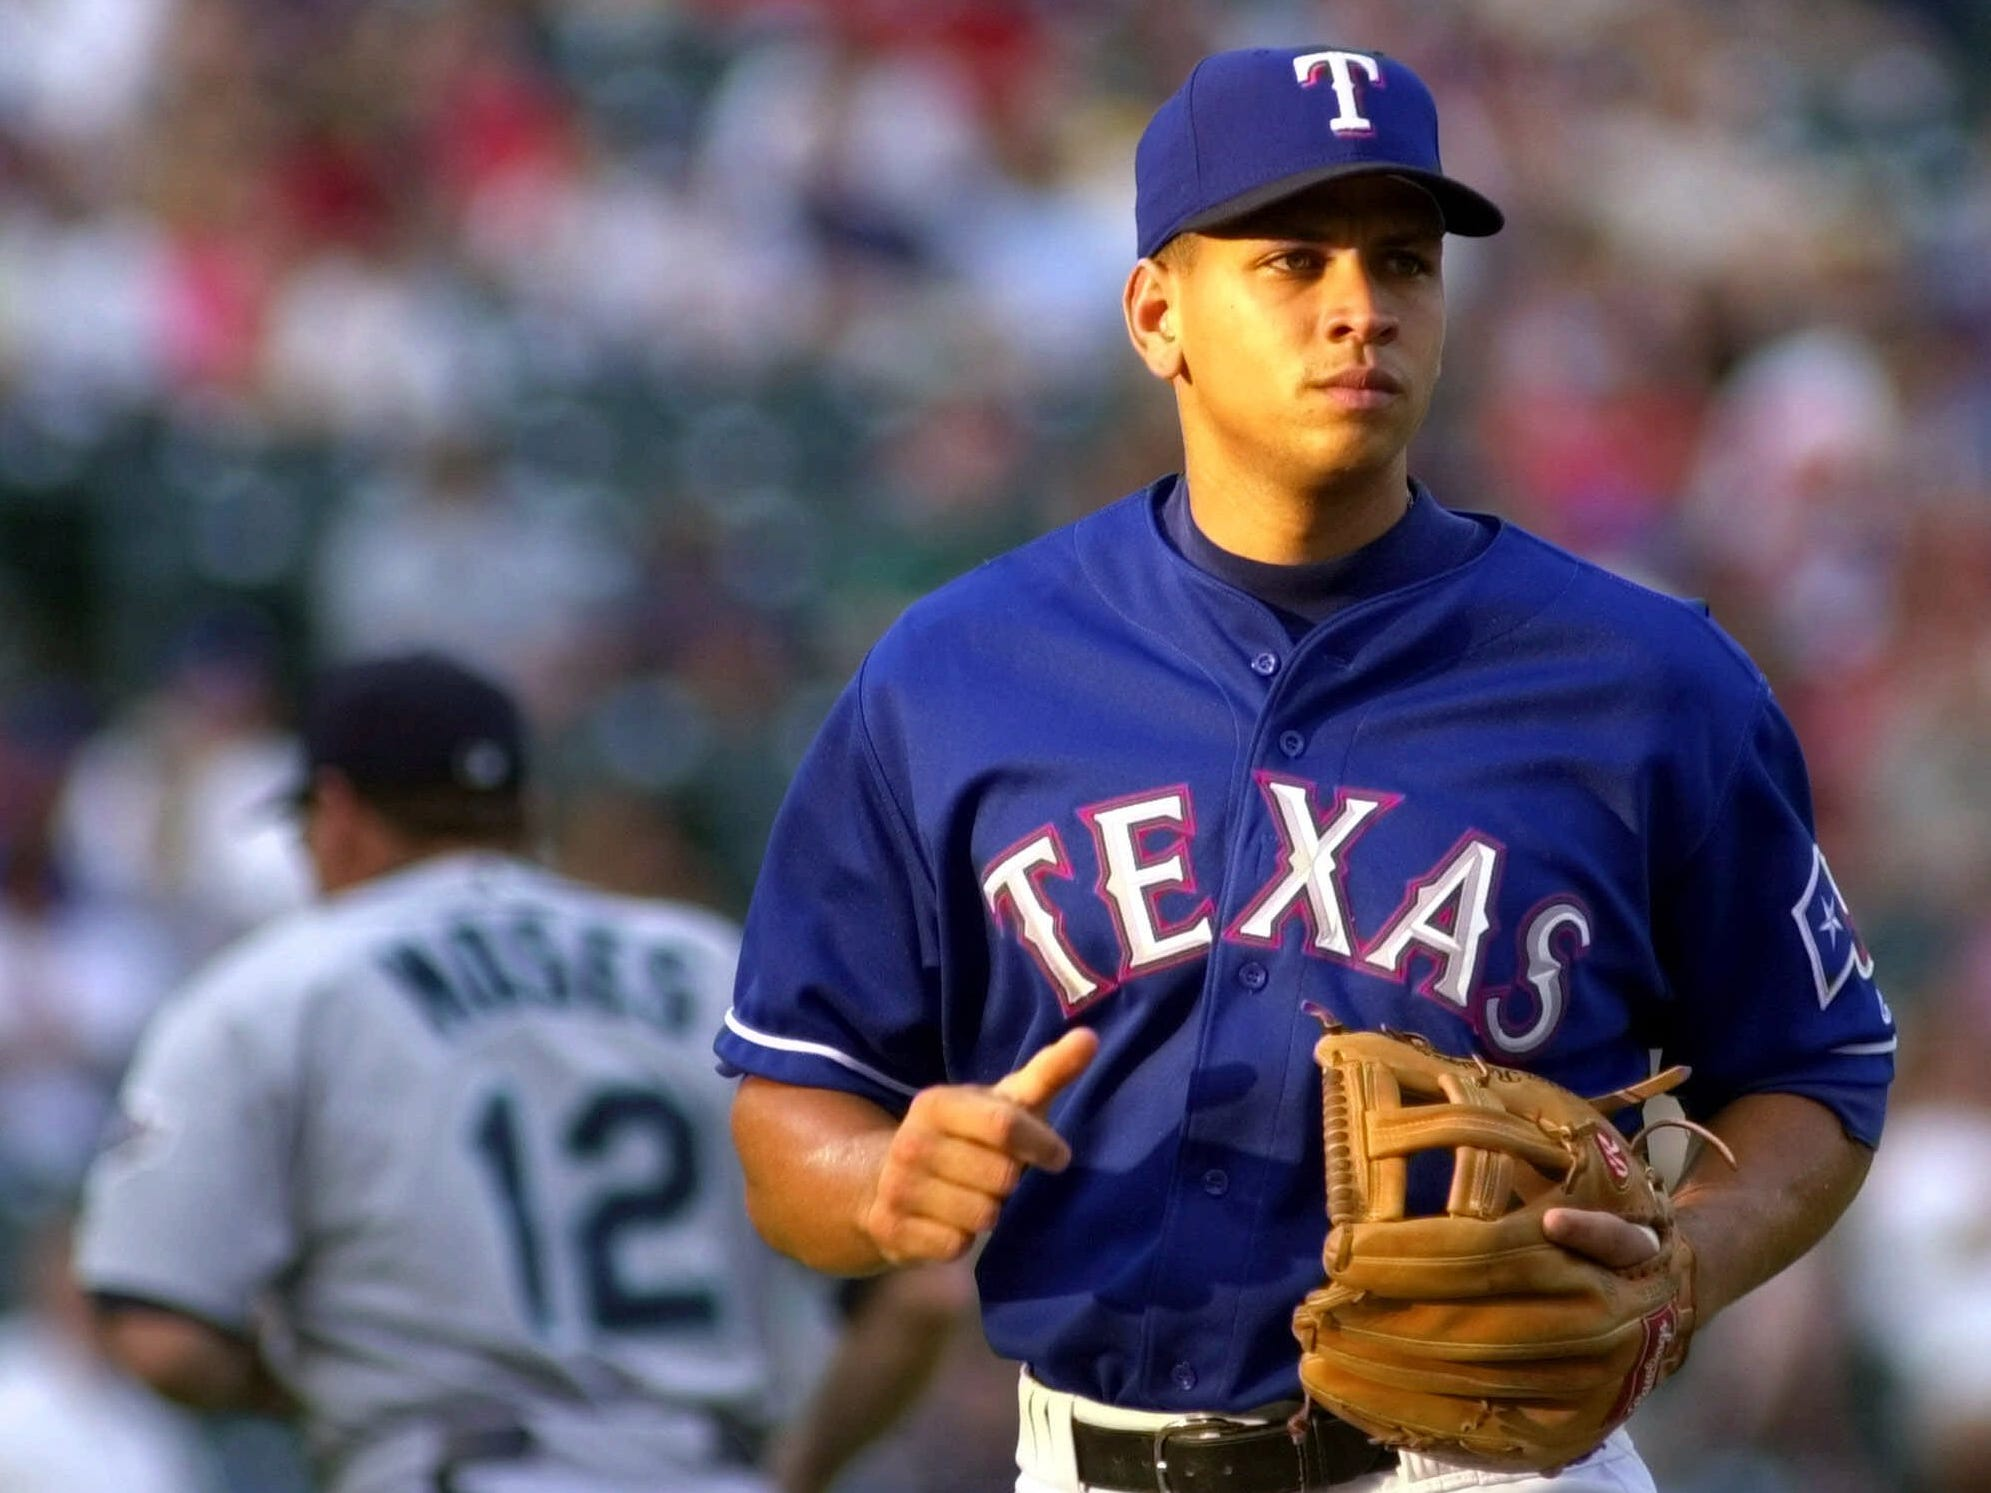 $252 million: Alex Rodriguez, Rangers (2001-2010) – traded to Yankees in 2004, opted out in 2007